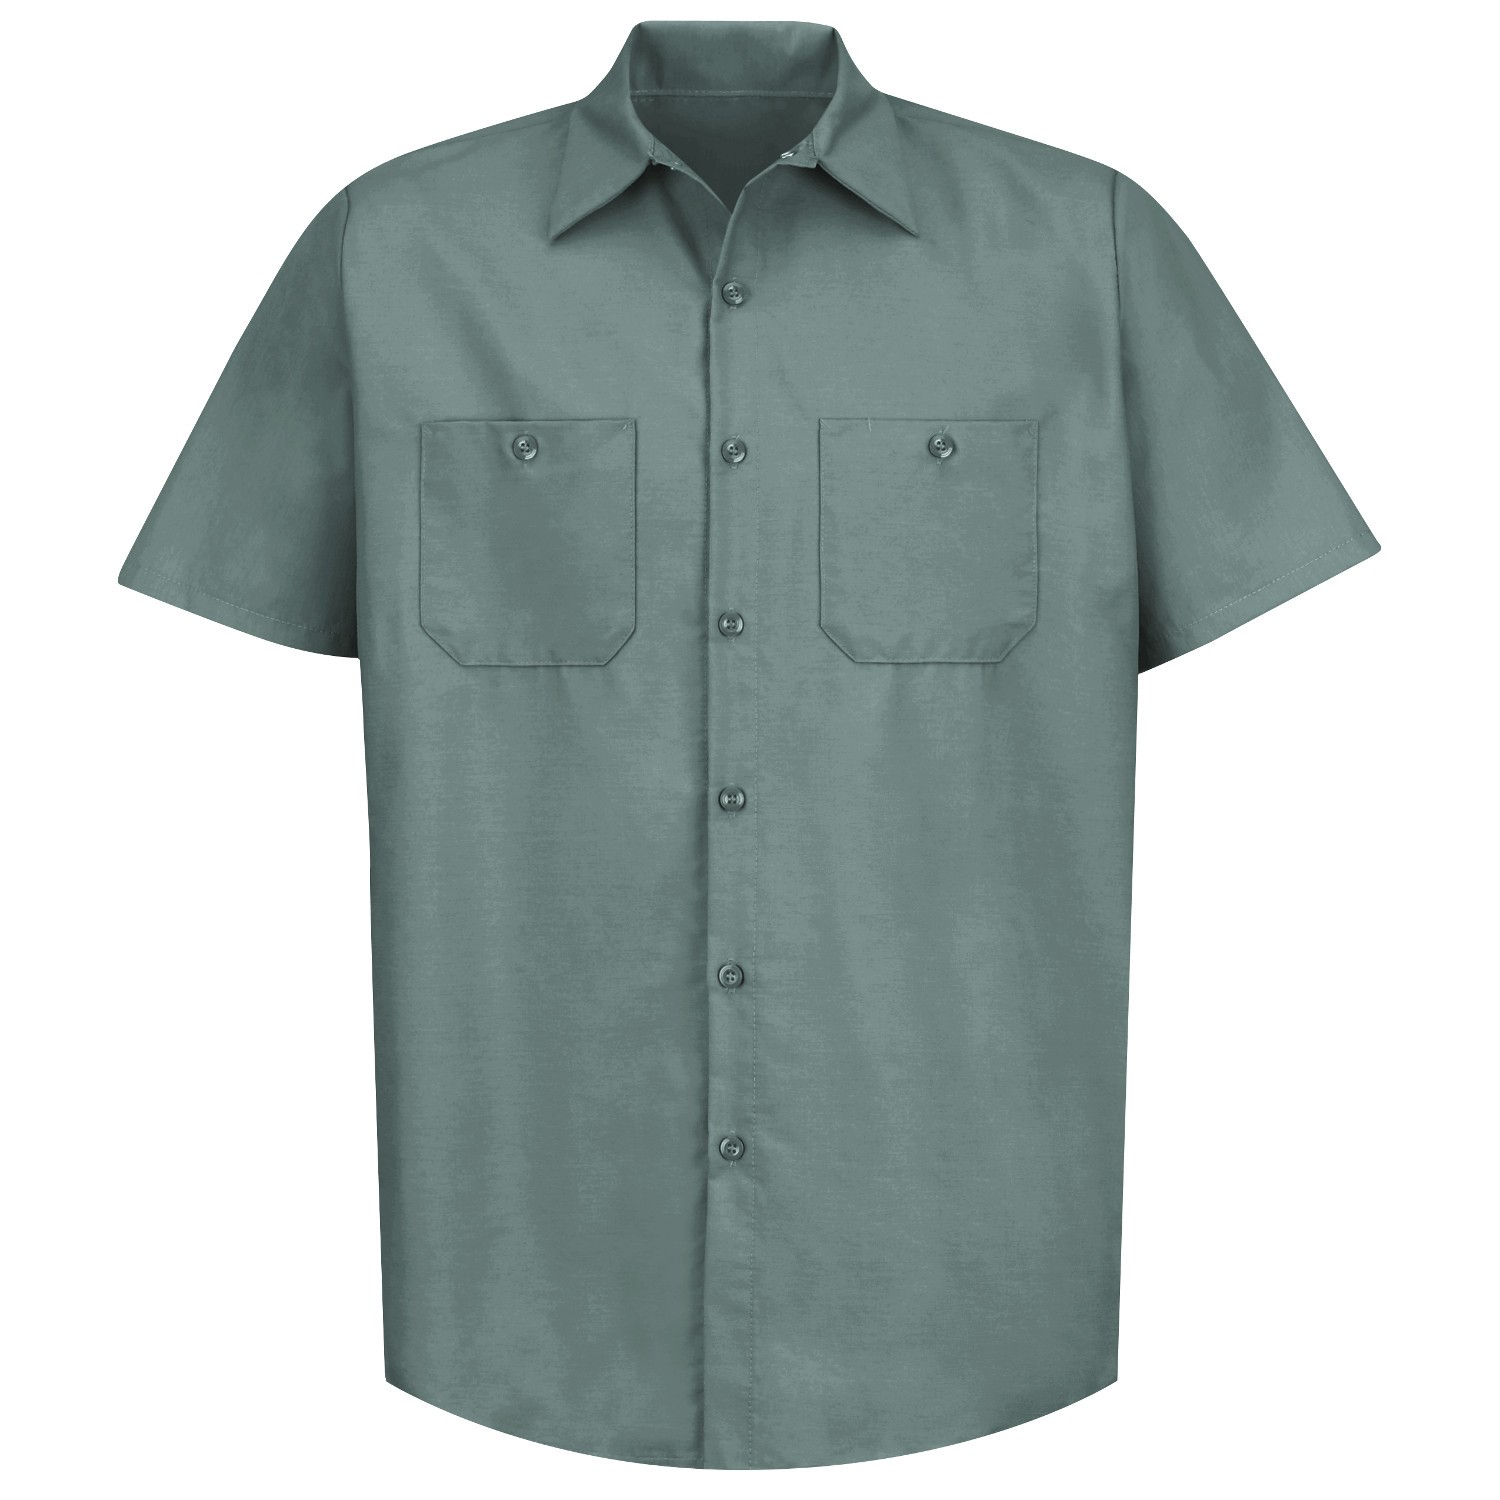 90c308cba555e Red Kap SP24 Men s Industrial Work Shirt - Short Sleeve - Light Green